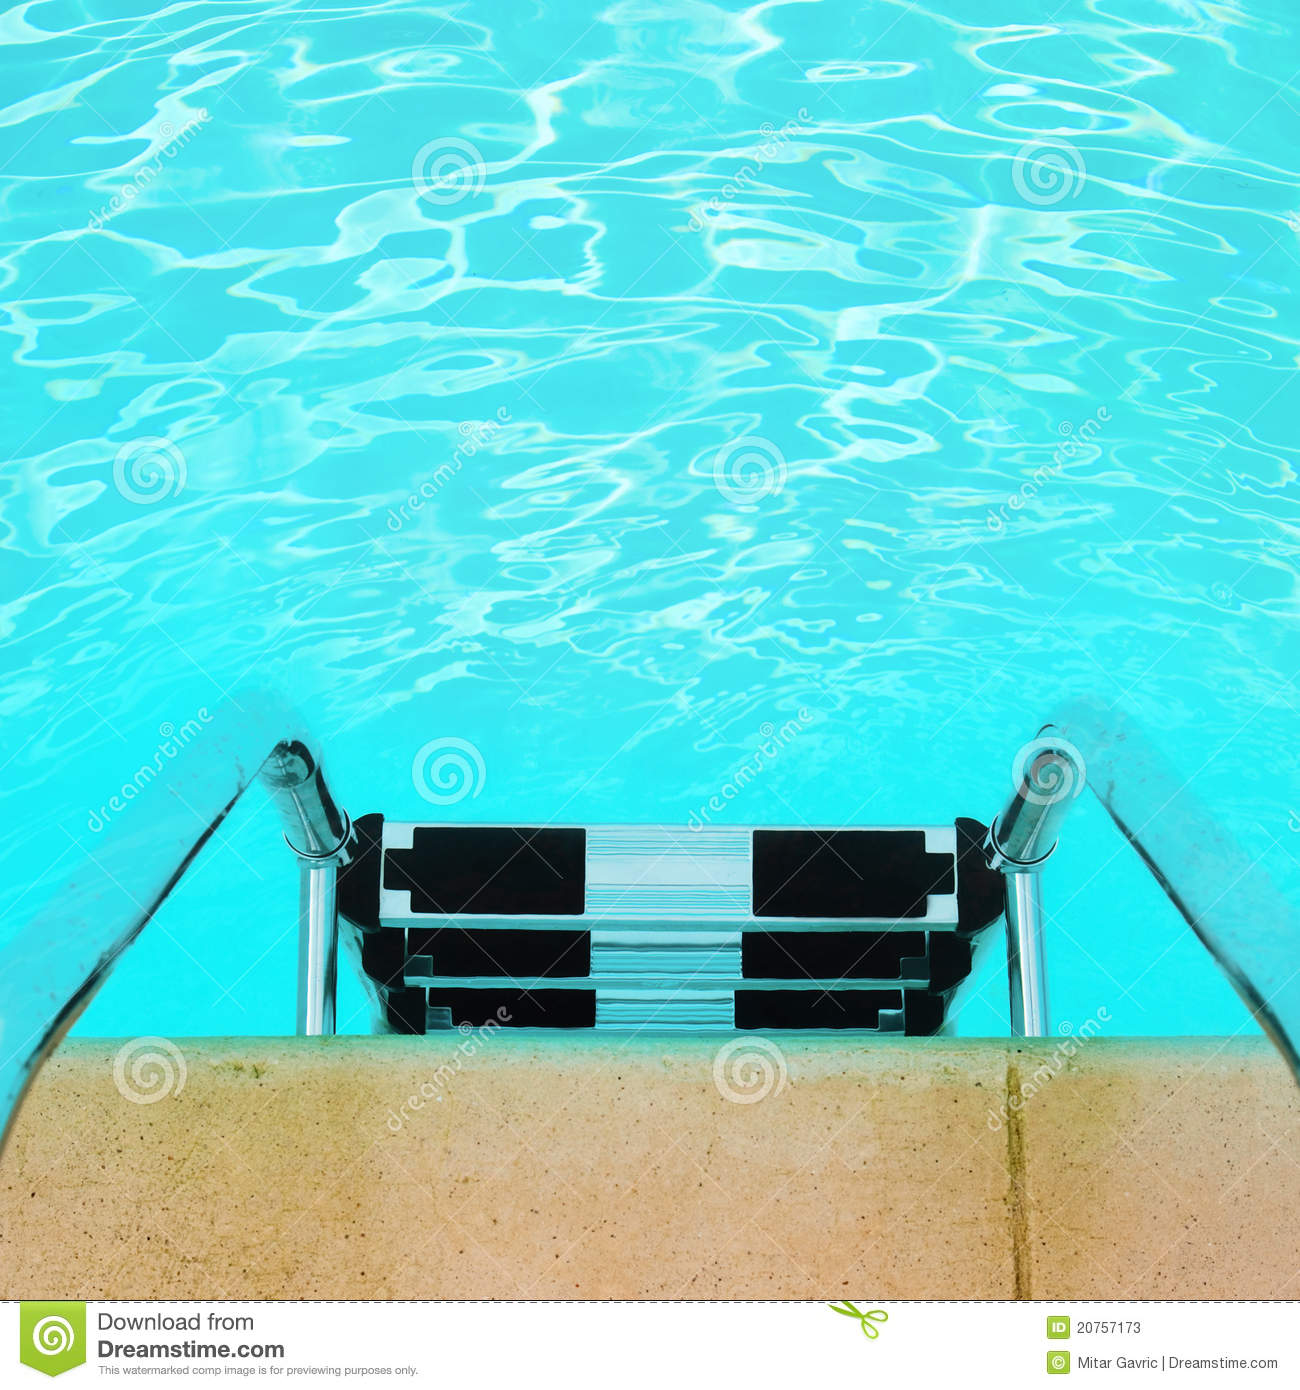 Swimming Pool Background swimming pool background stock photos - image: 20757173